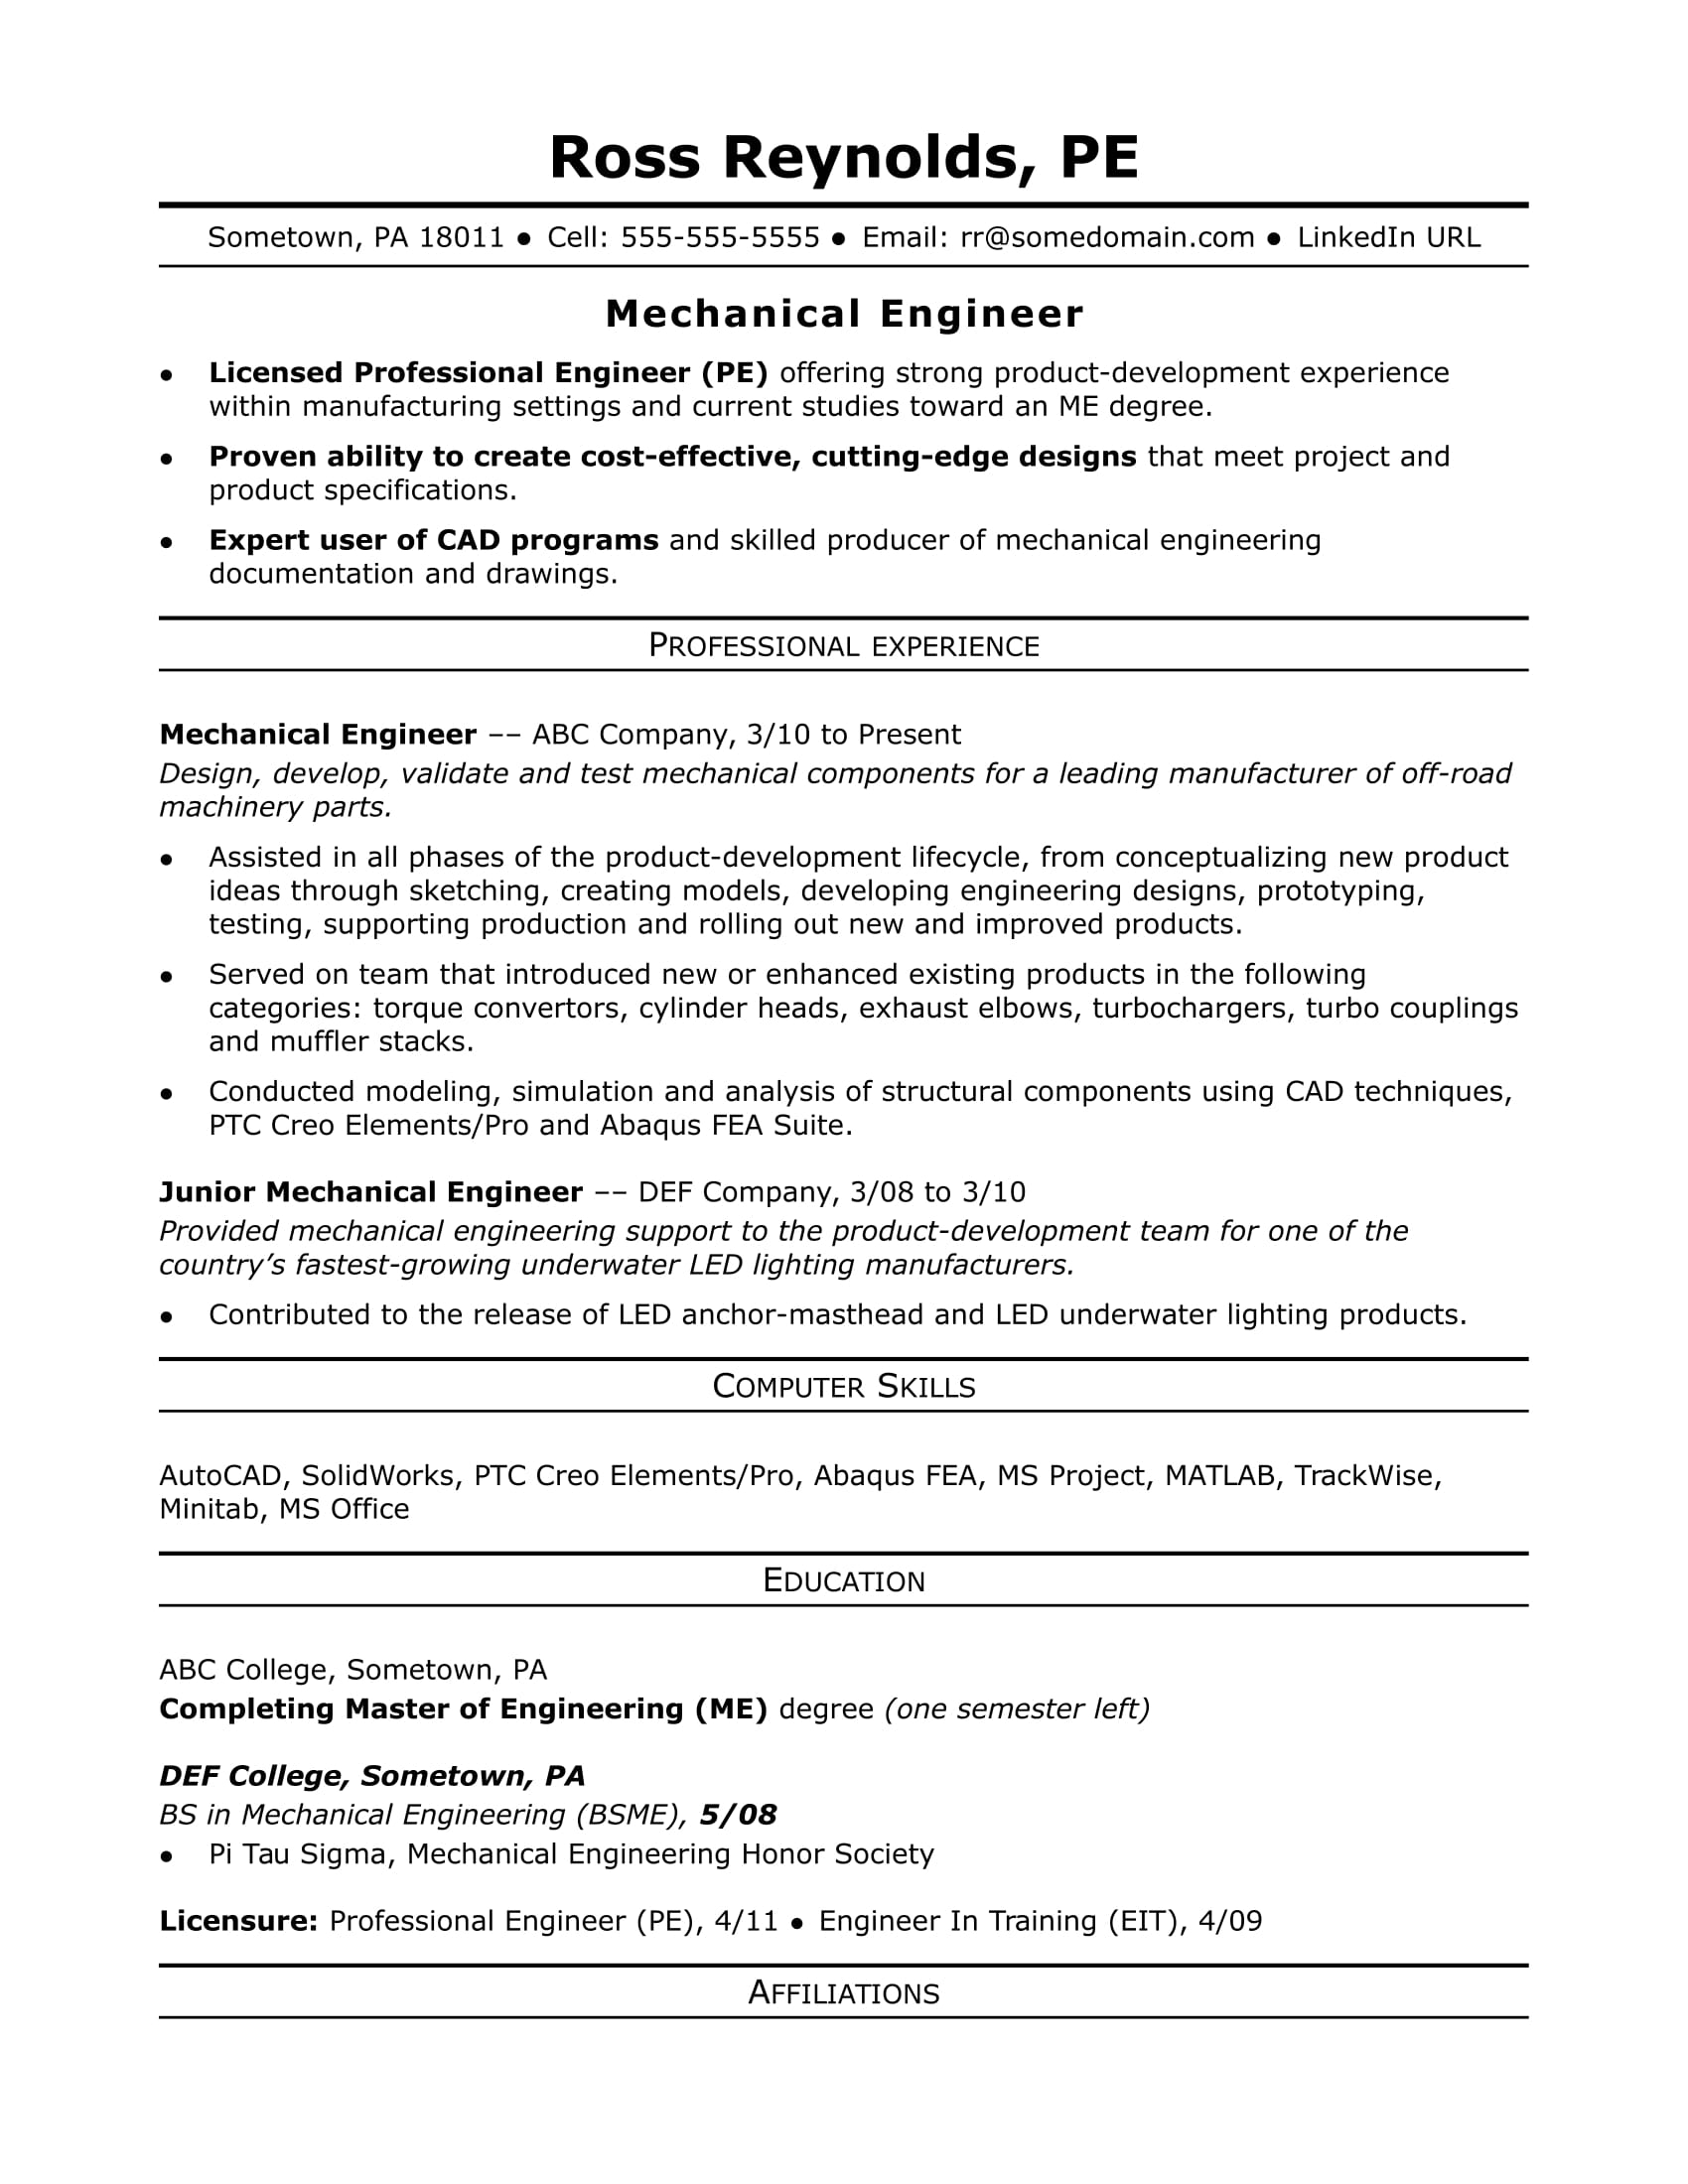 Exceptional Sample Resume For A Midlevel Mechanical Engineer